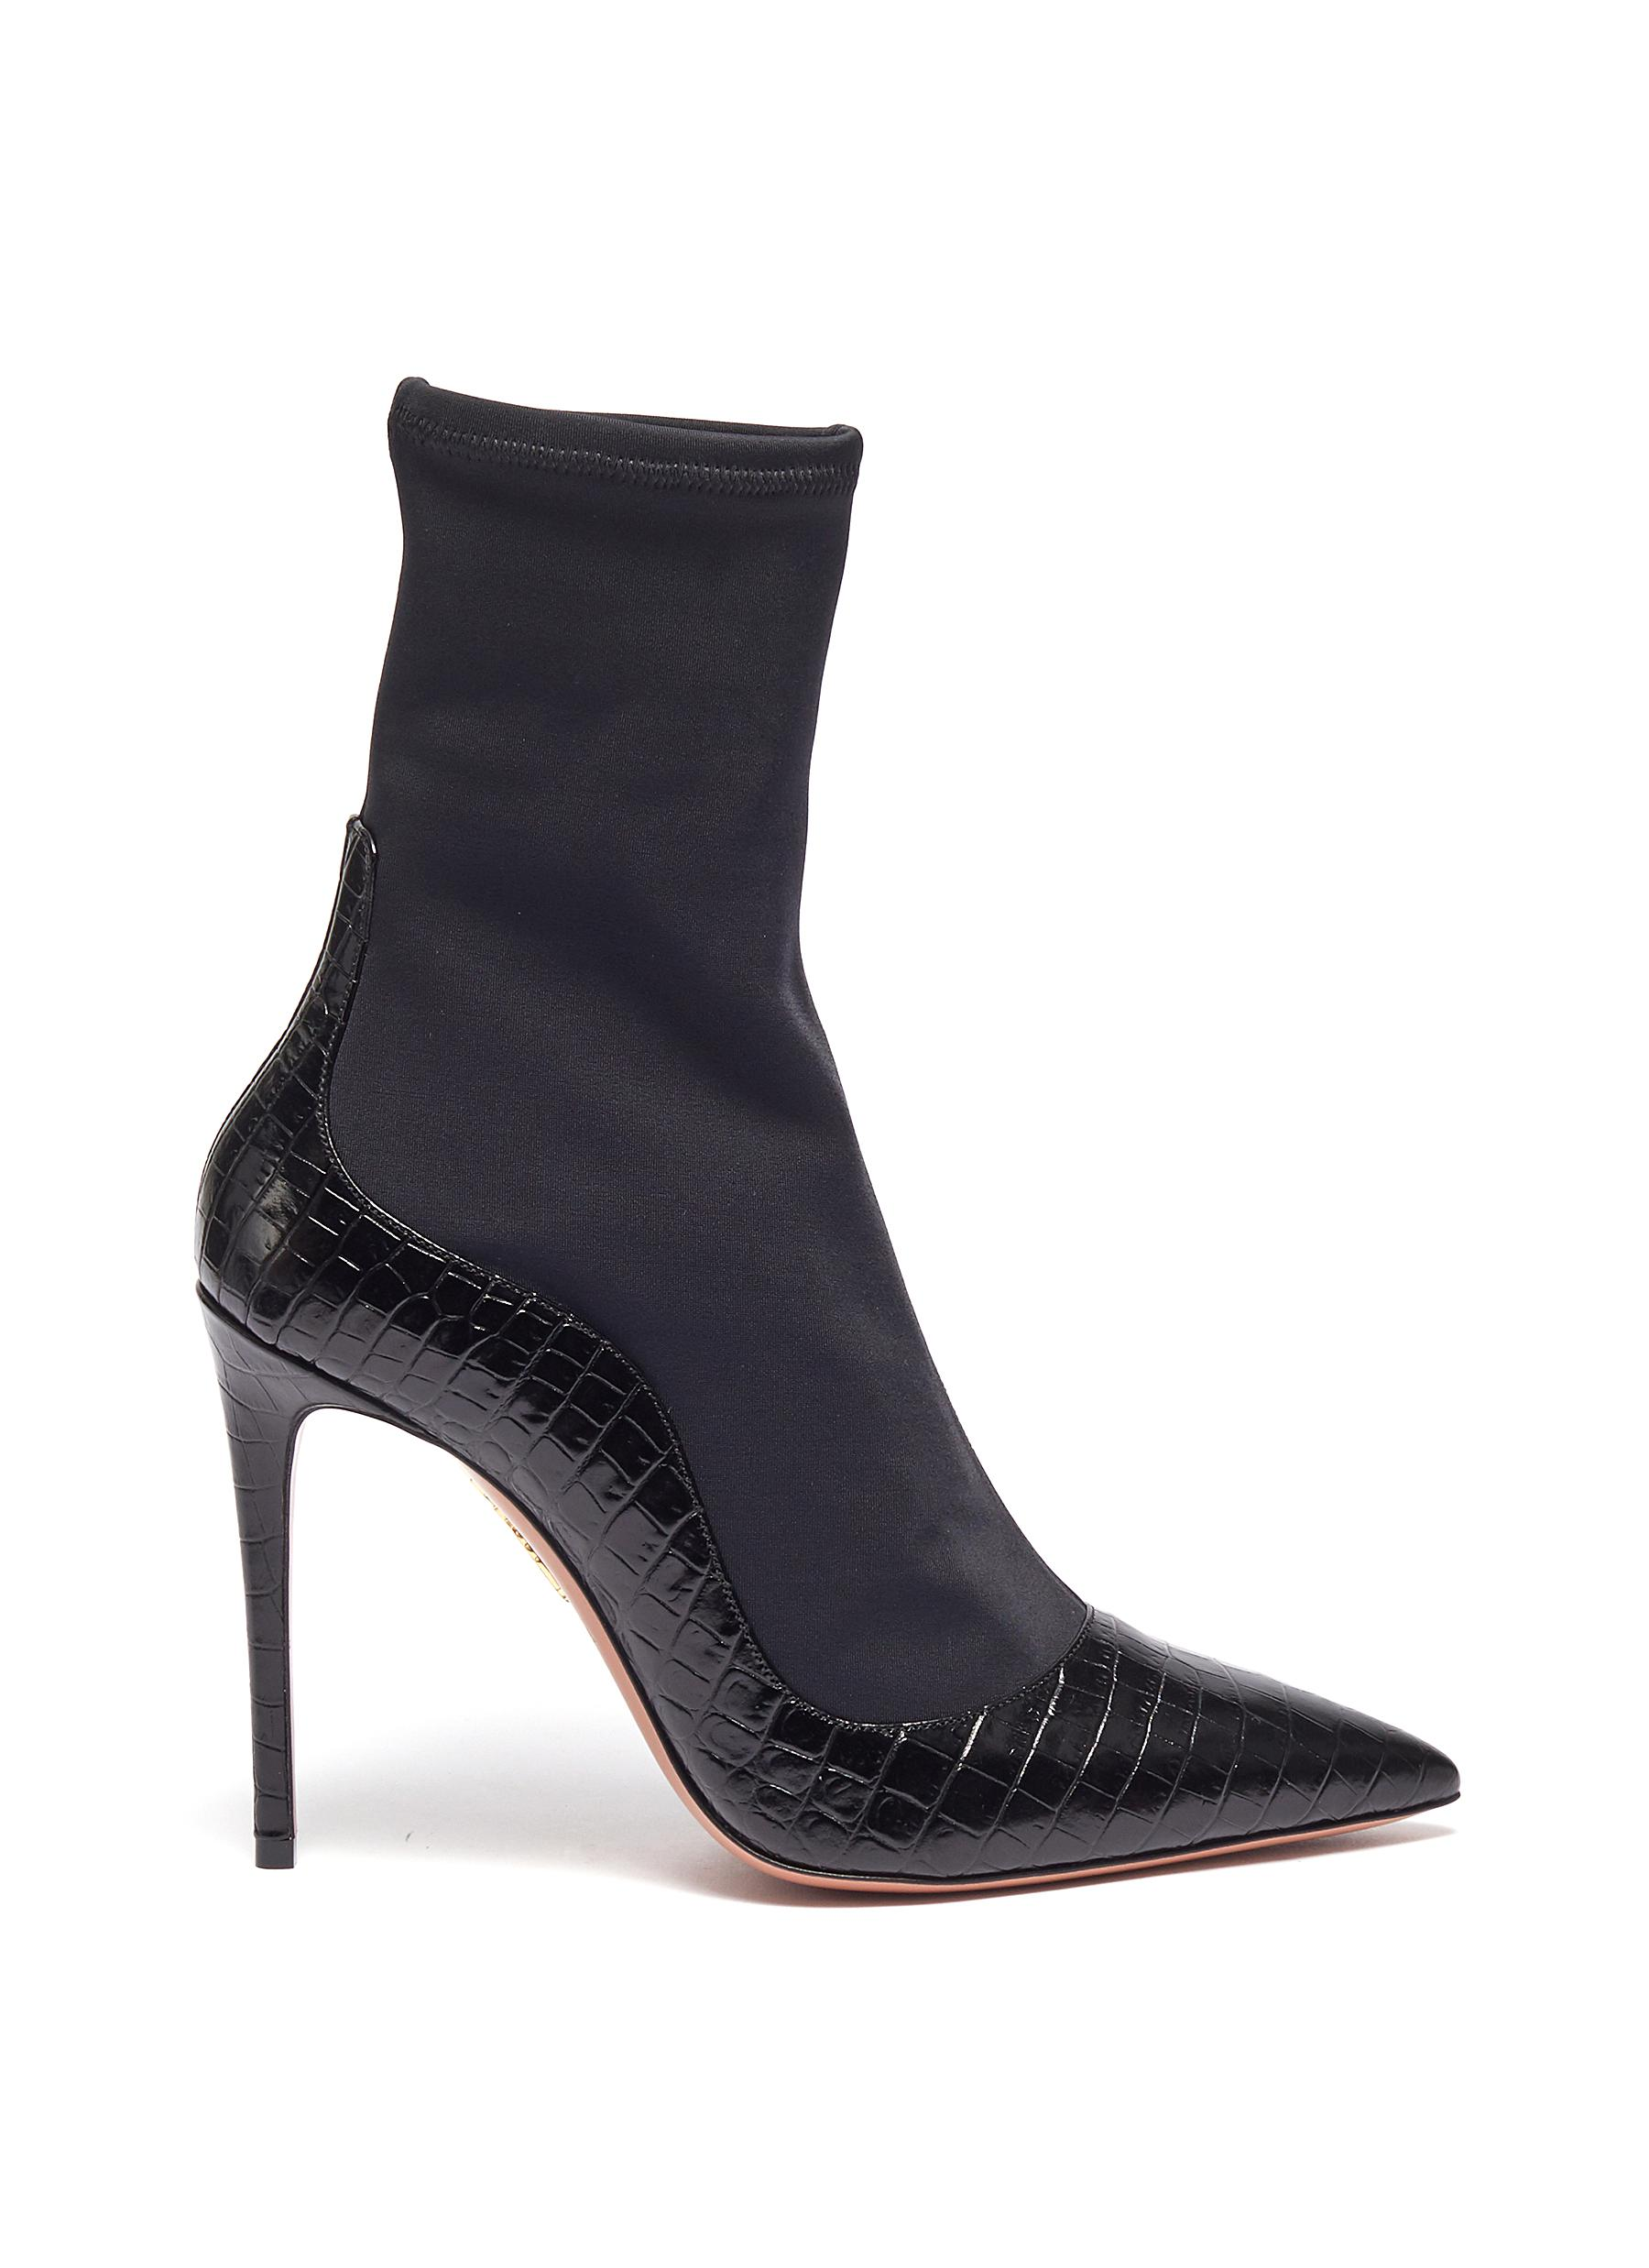 Zen croc embossed leather sock knit ankle boots by Aquazzura